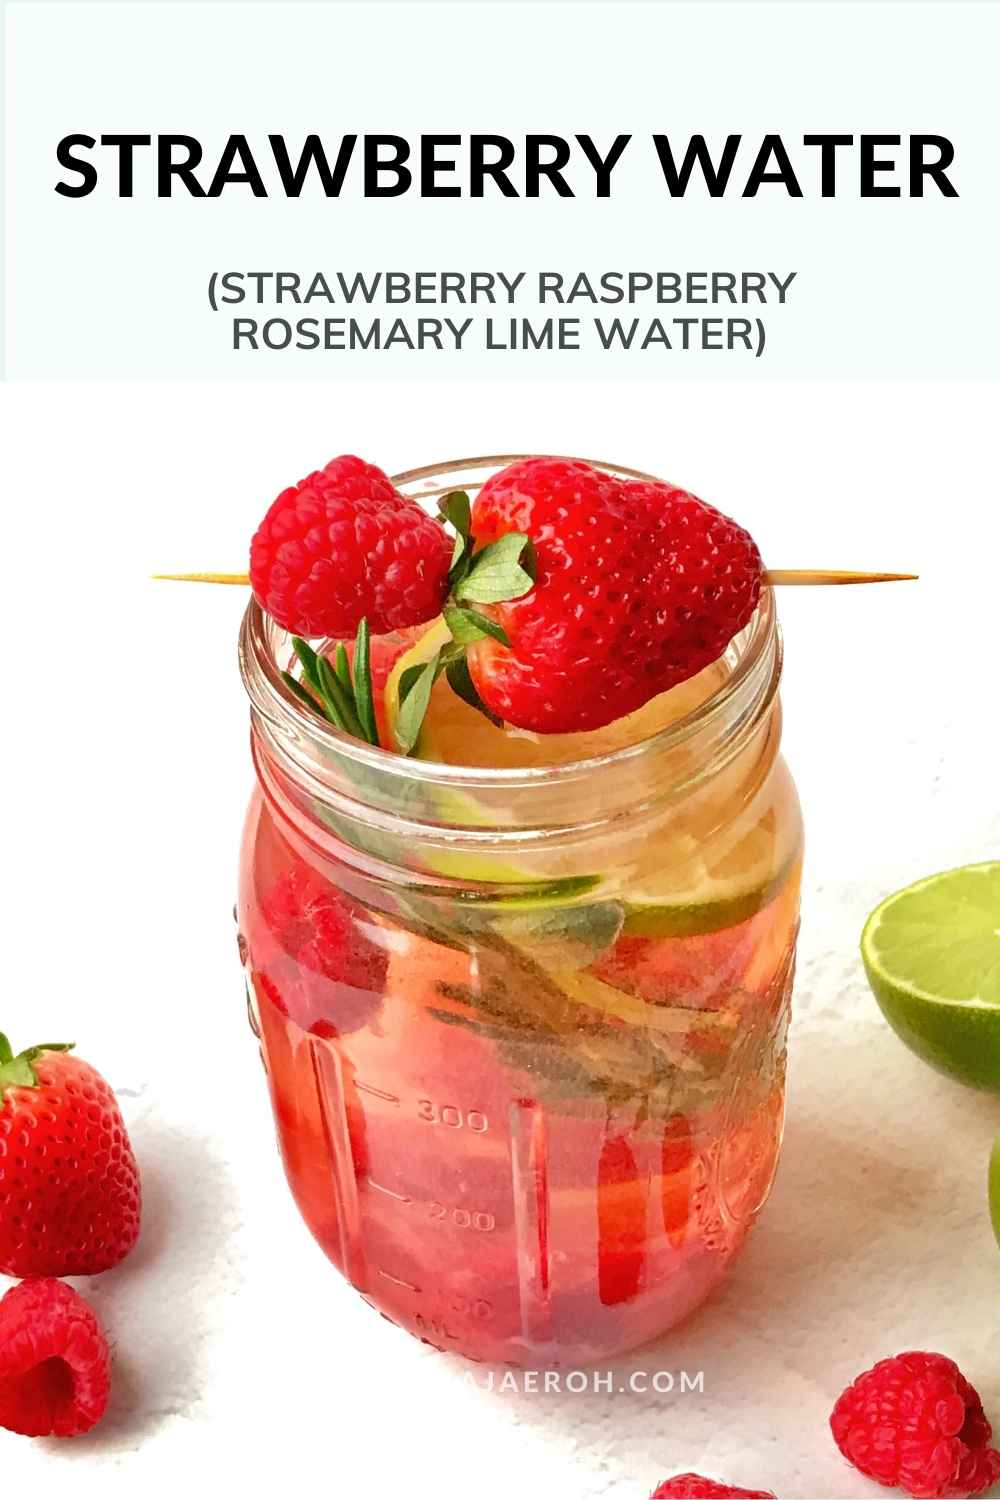 Best Infused water recipes for glowing skin Drink more water with DIY naturally flavored water, aka homemade fruit water! These fruit infused water recipes for glowing skin are health-improving, refreshing, and will surely keep you hydrated. Fruit-flavored water comes in handy during warm weather as we naturally tend to drink more water then. With these fruit water recipes, you can confidently keep the summer heat at bay and stay hydrated as you should. #Infusedwater #fruitwater #vitaminwater #DIYfruitinfusedwater #detoxwater #strawberrywater